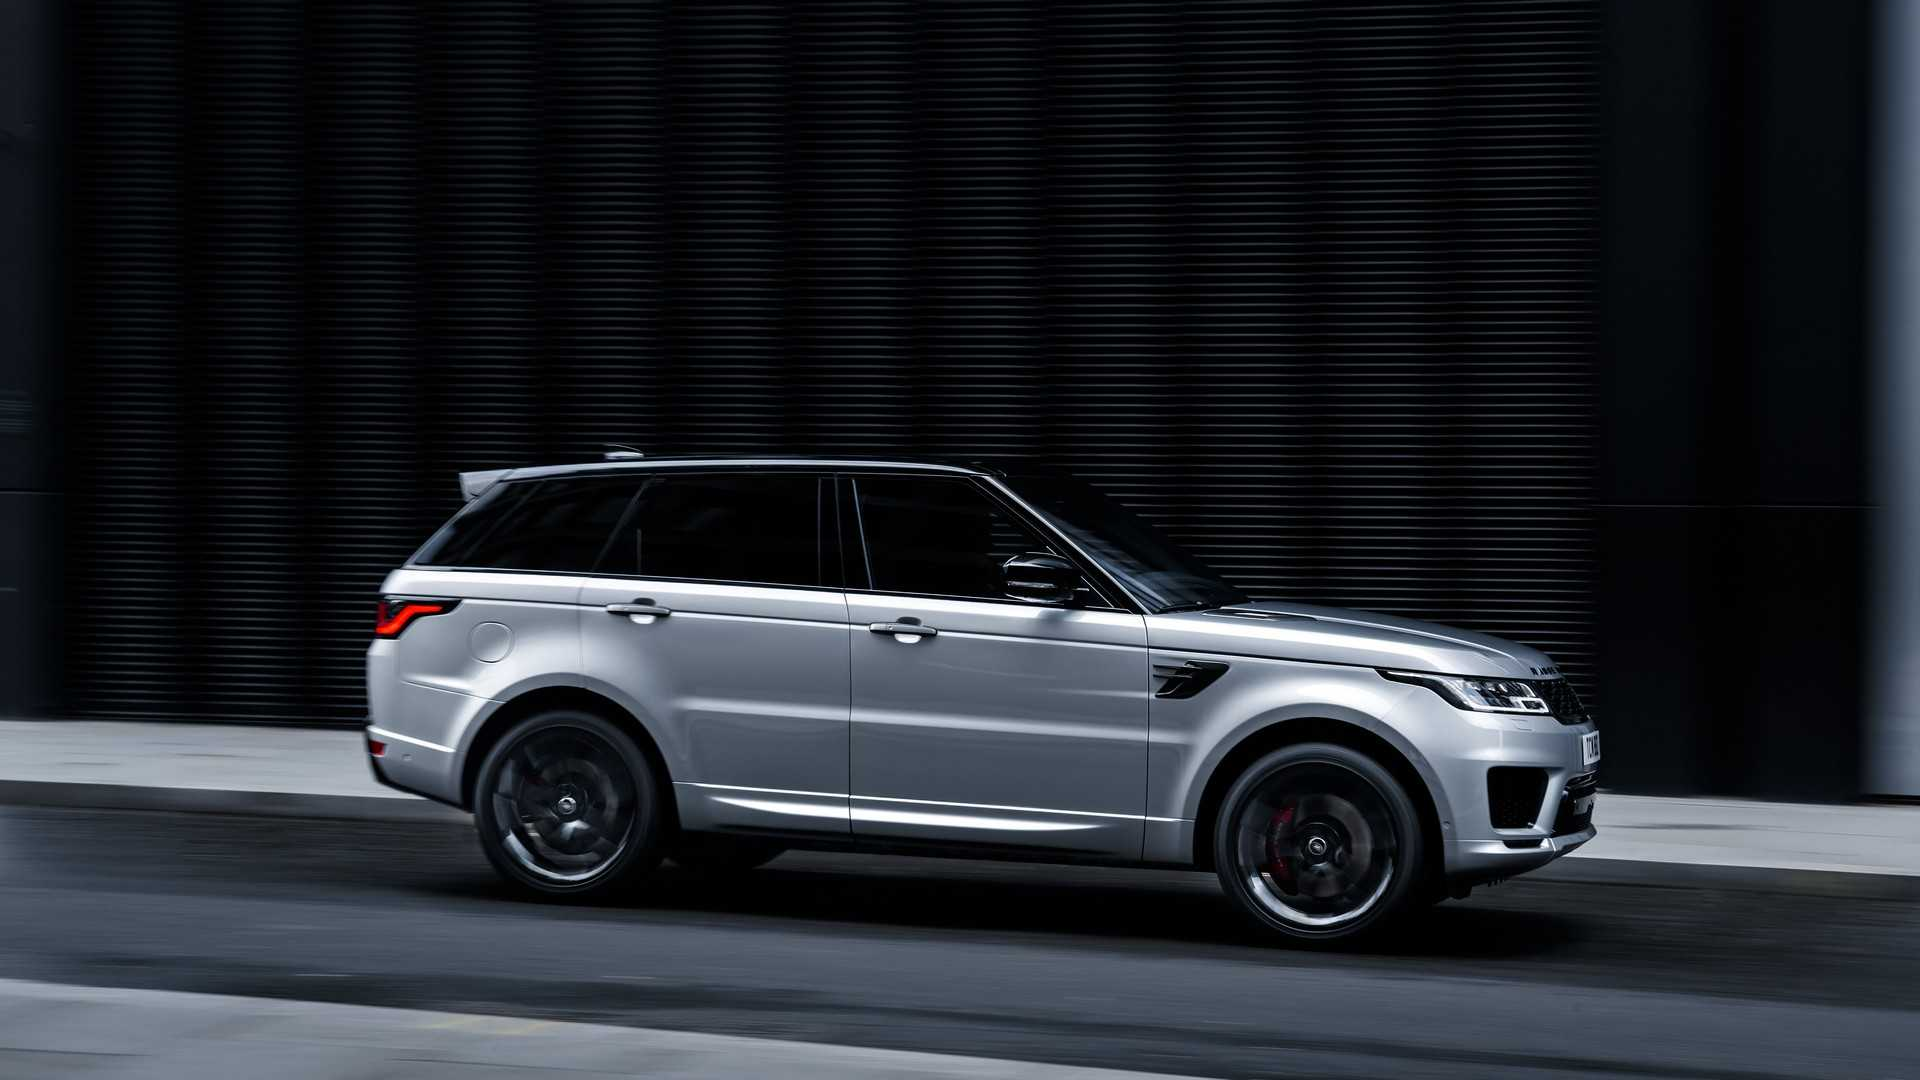 32 The 2020 Range Rover Sport Price Design And Review